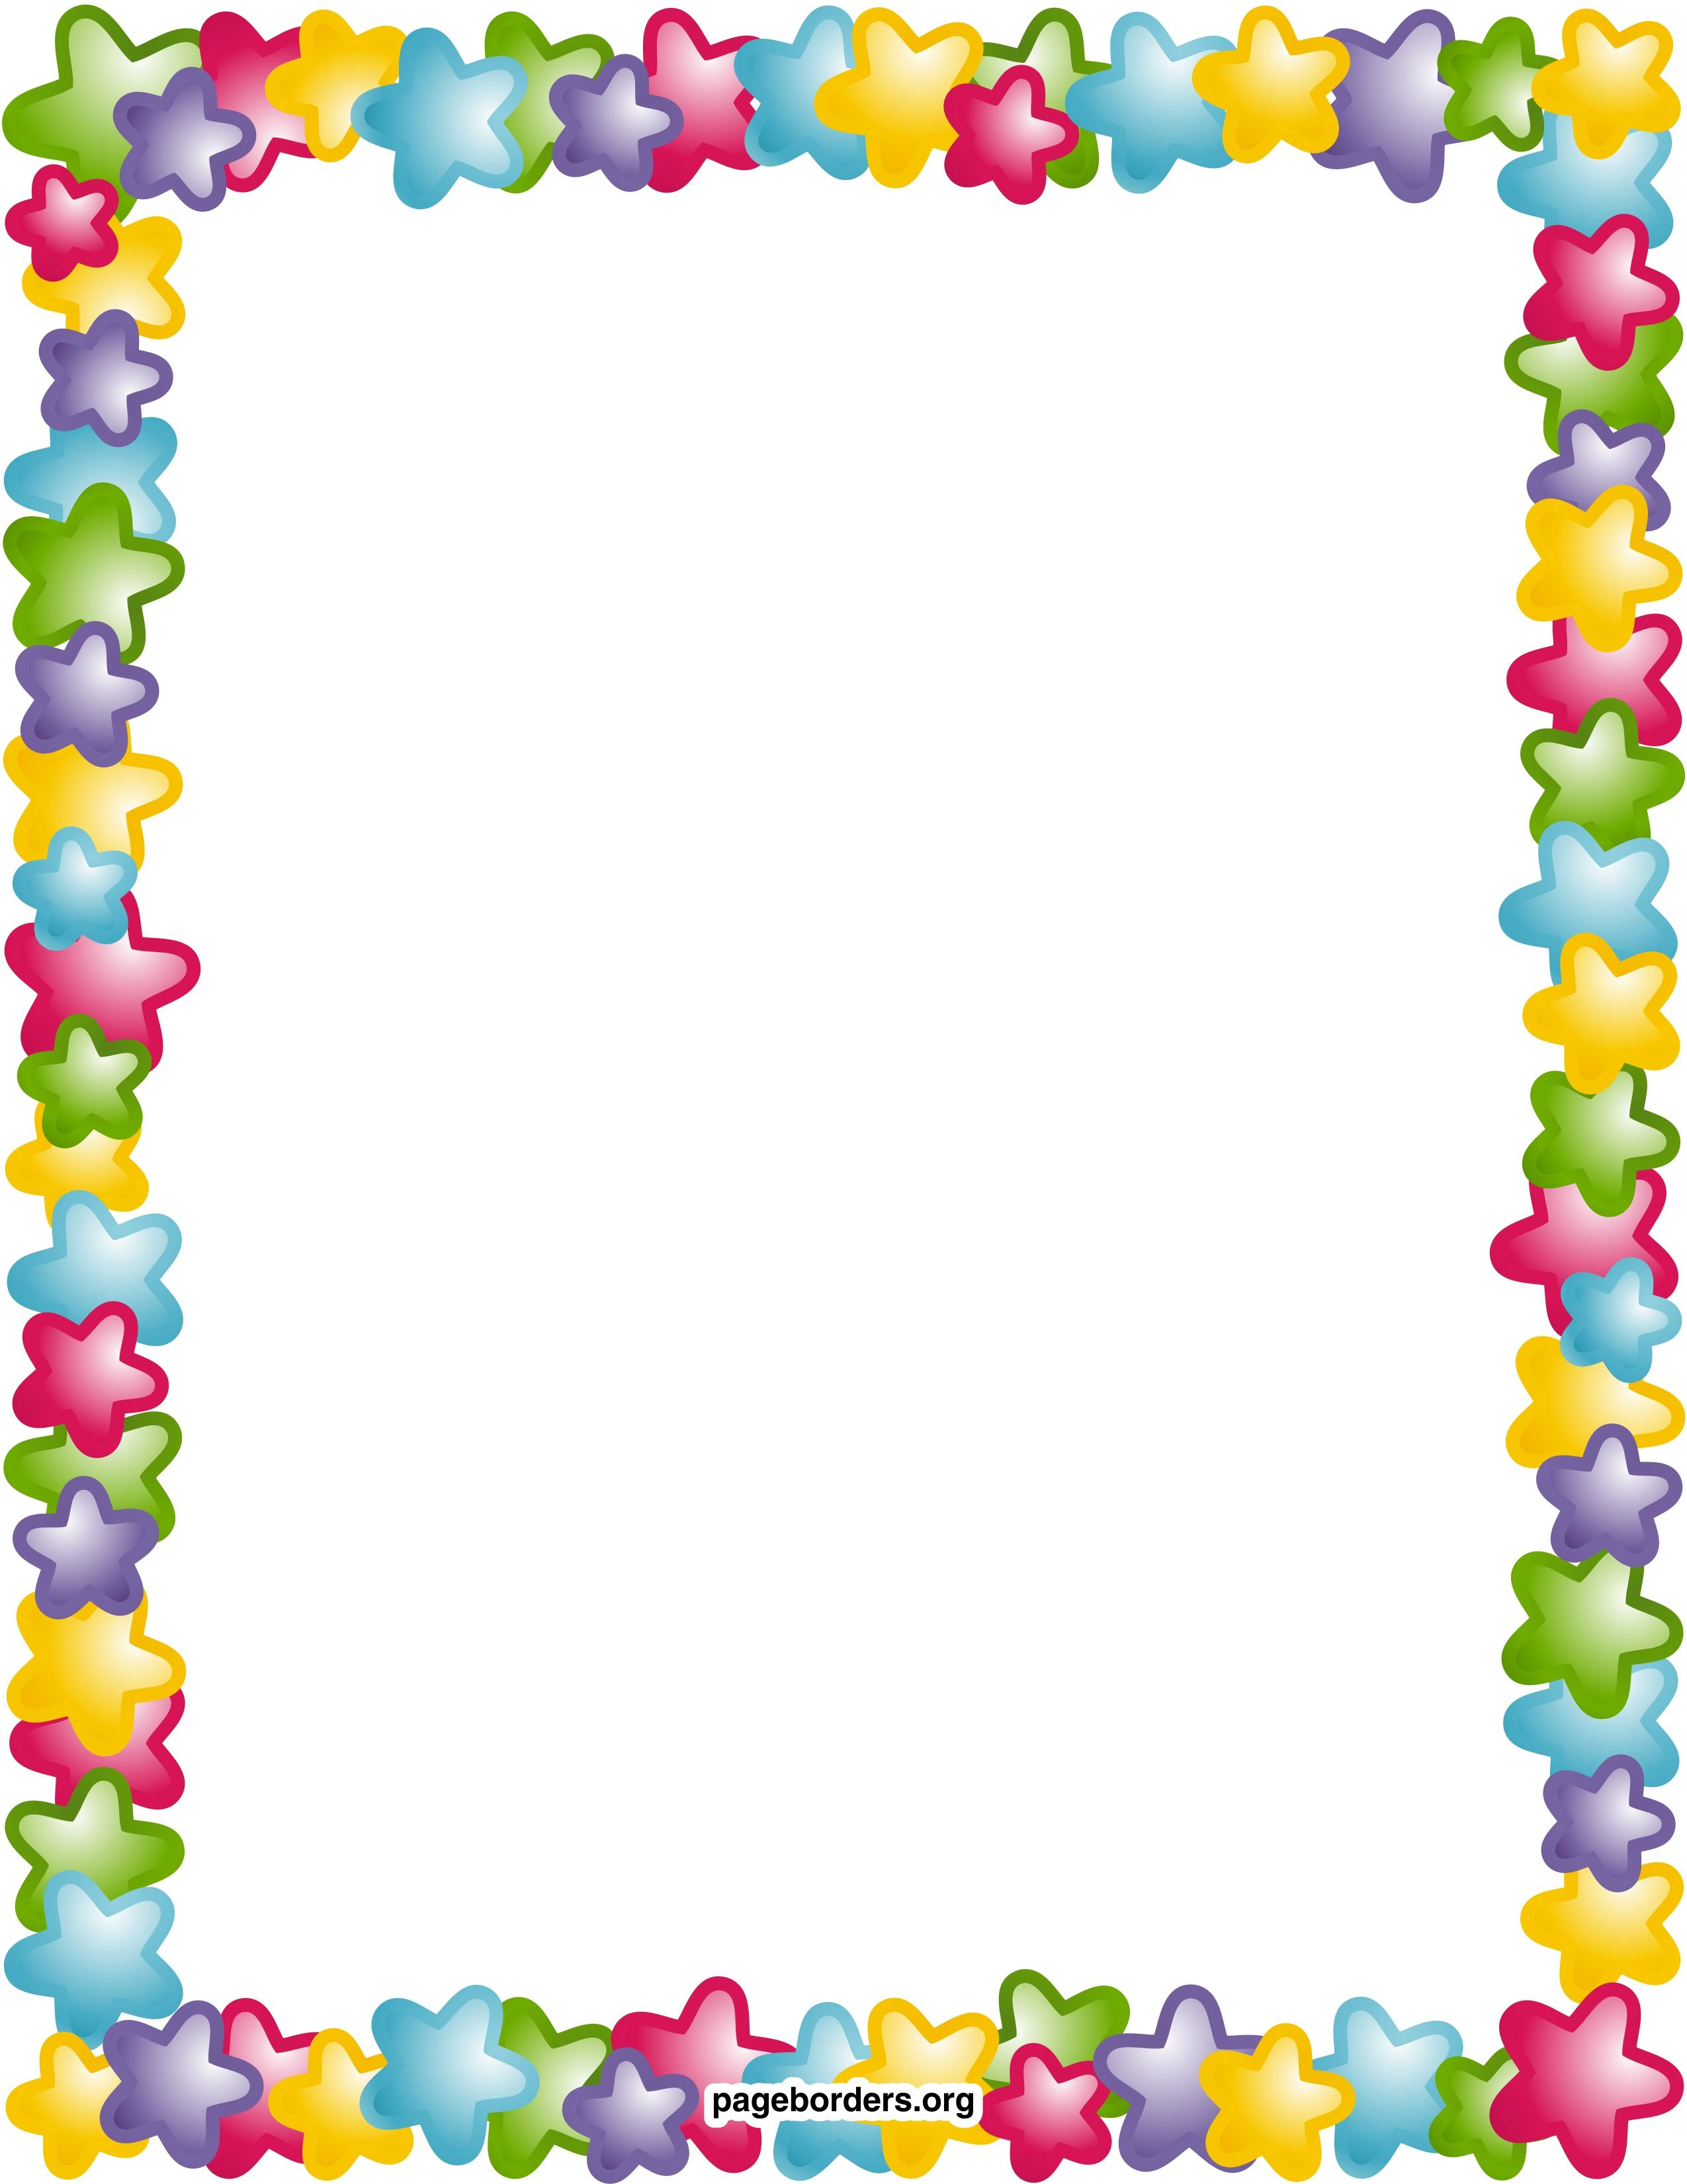 Remarkable Decoration Free Printable Borders And Frames Clip Art - Free Printable Page Borders